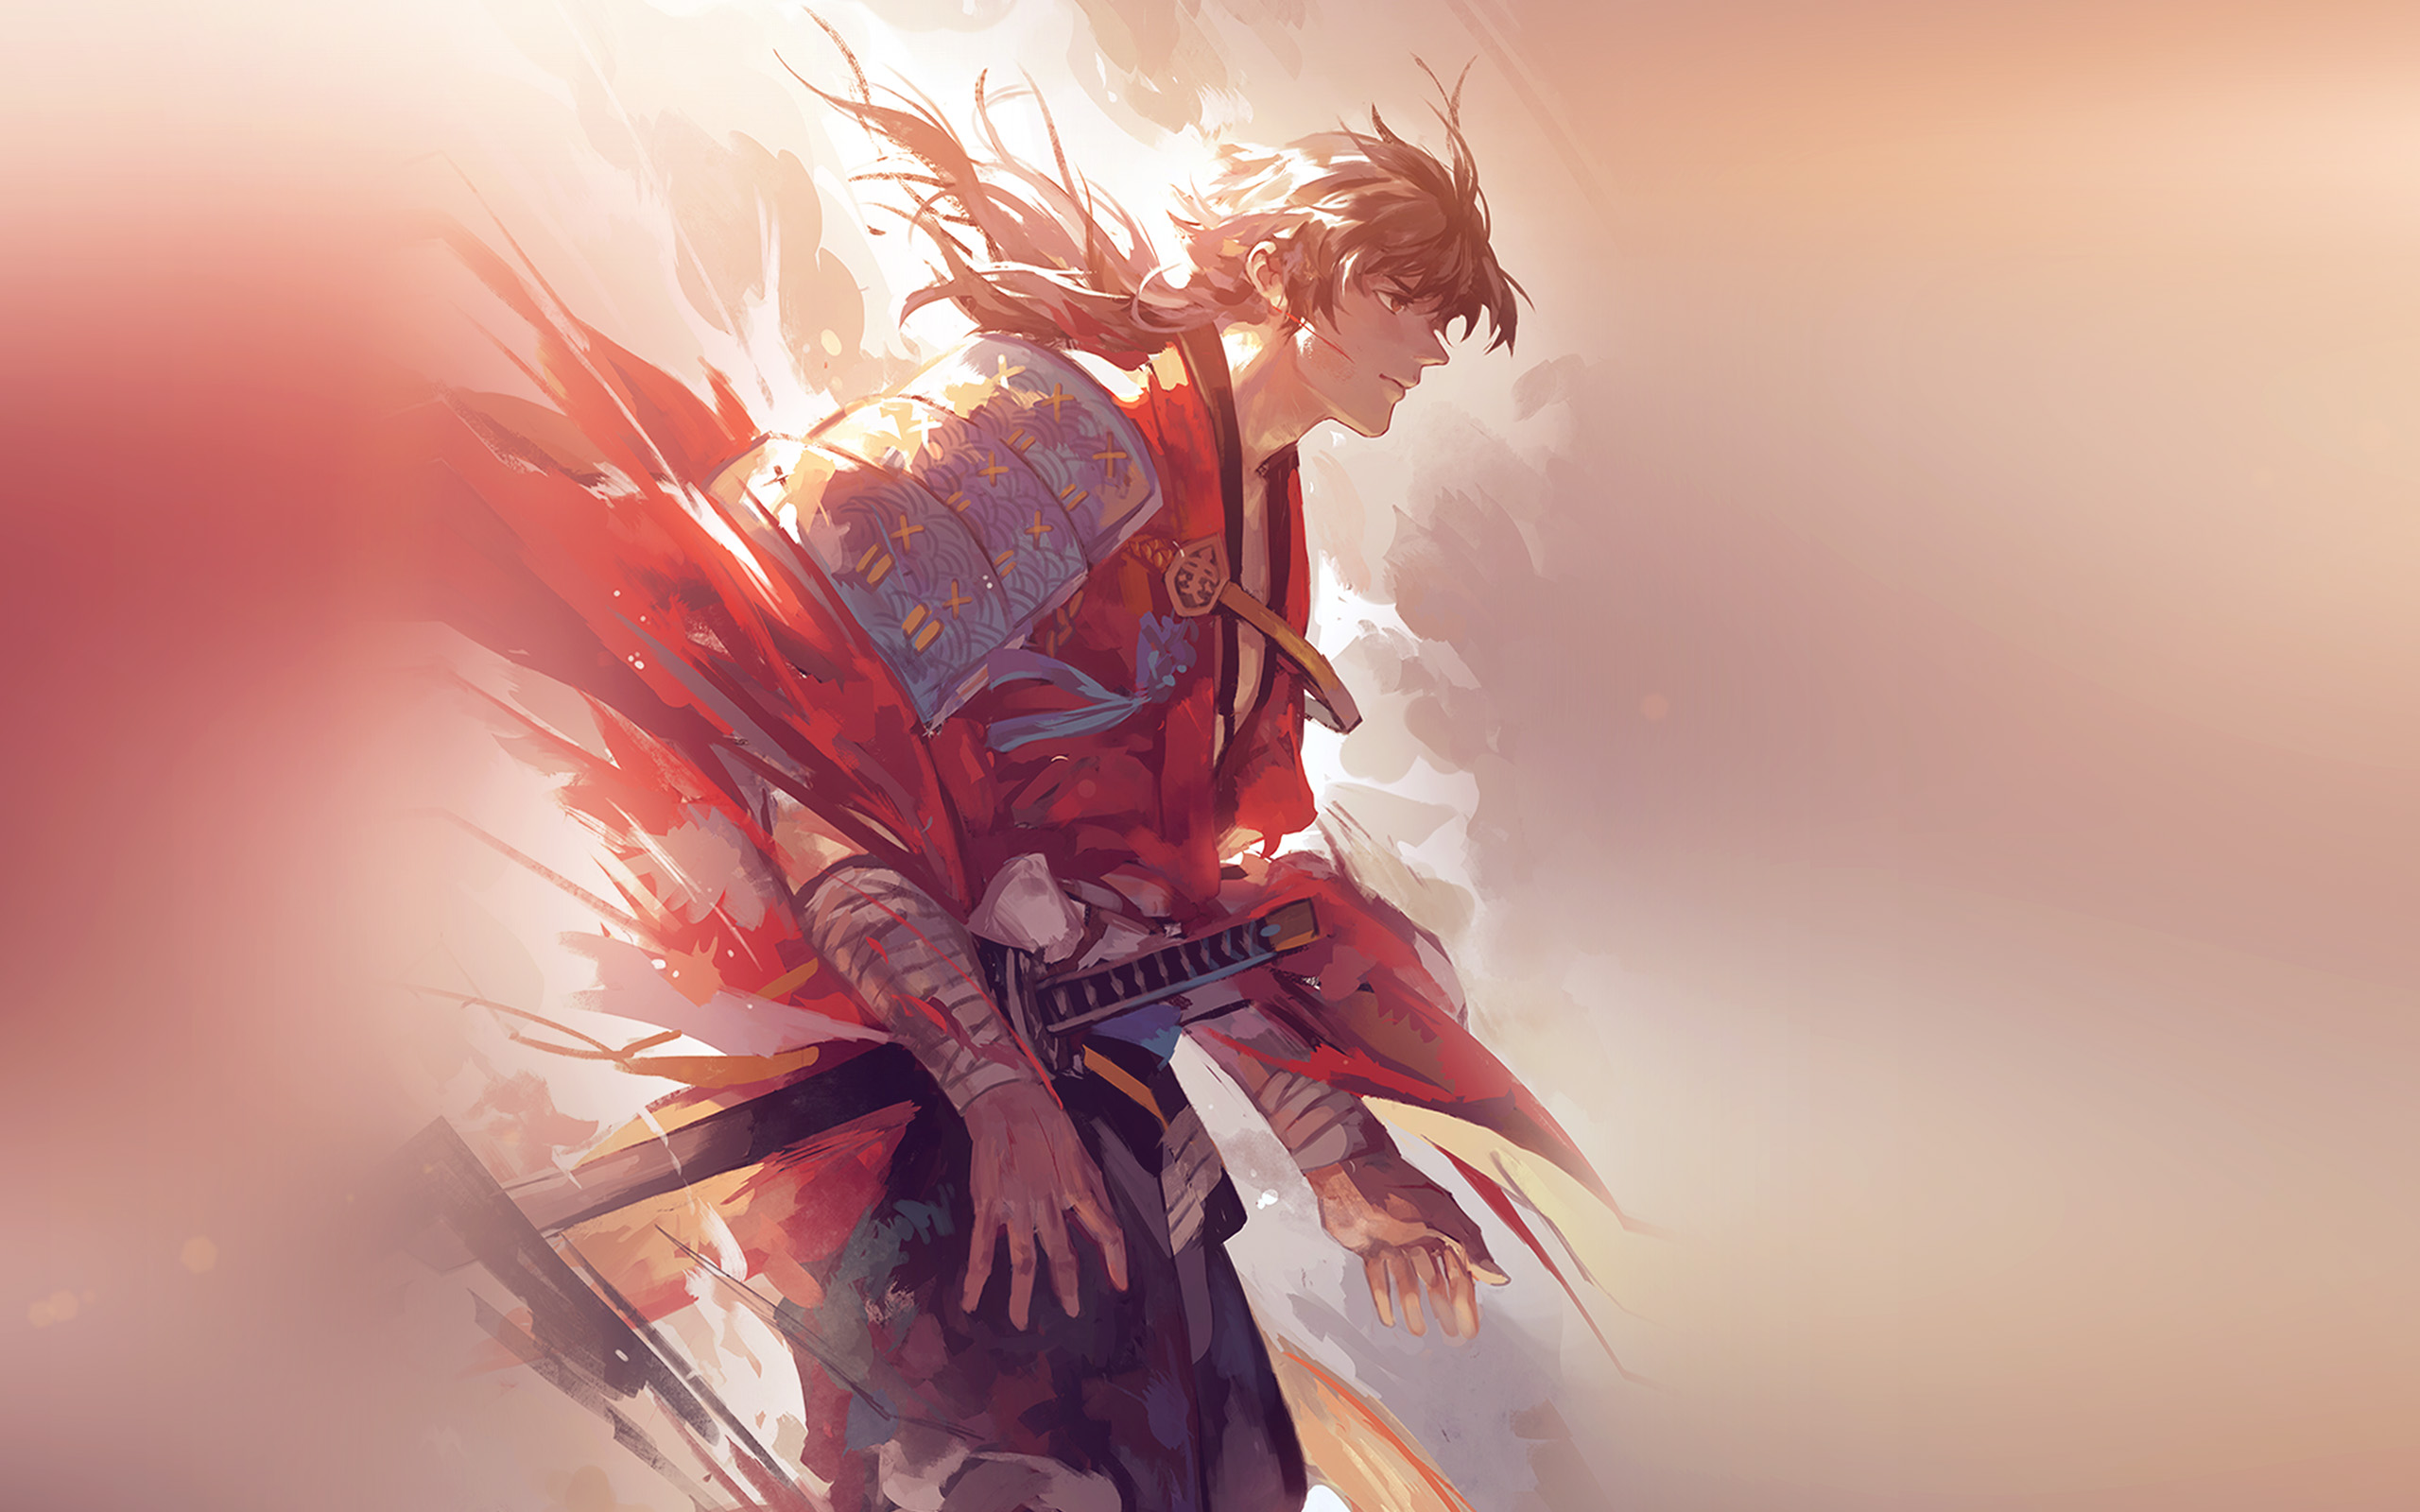 aw64-hanyijie-hero-red-handsomeillustration-art-anime